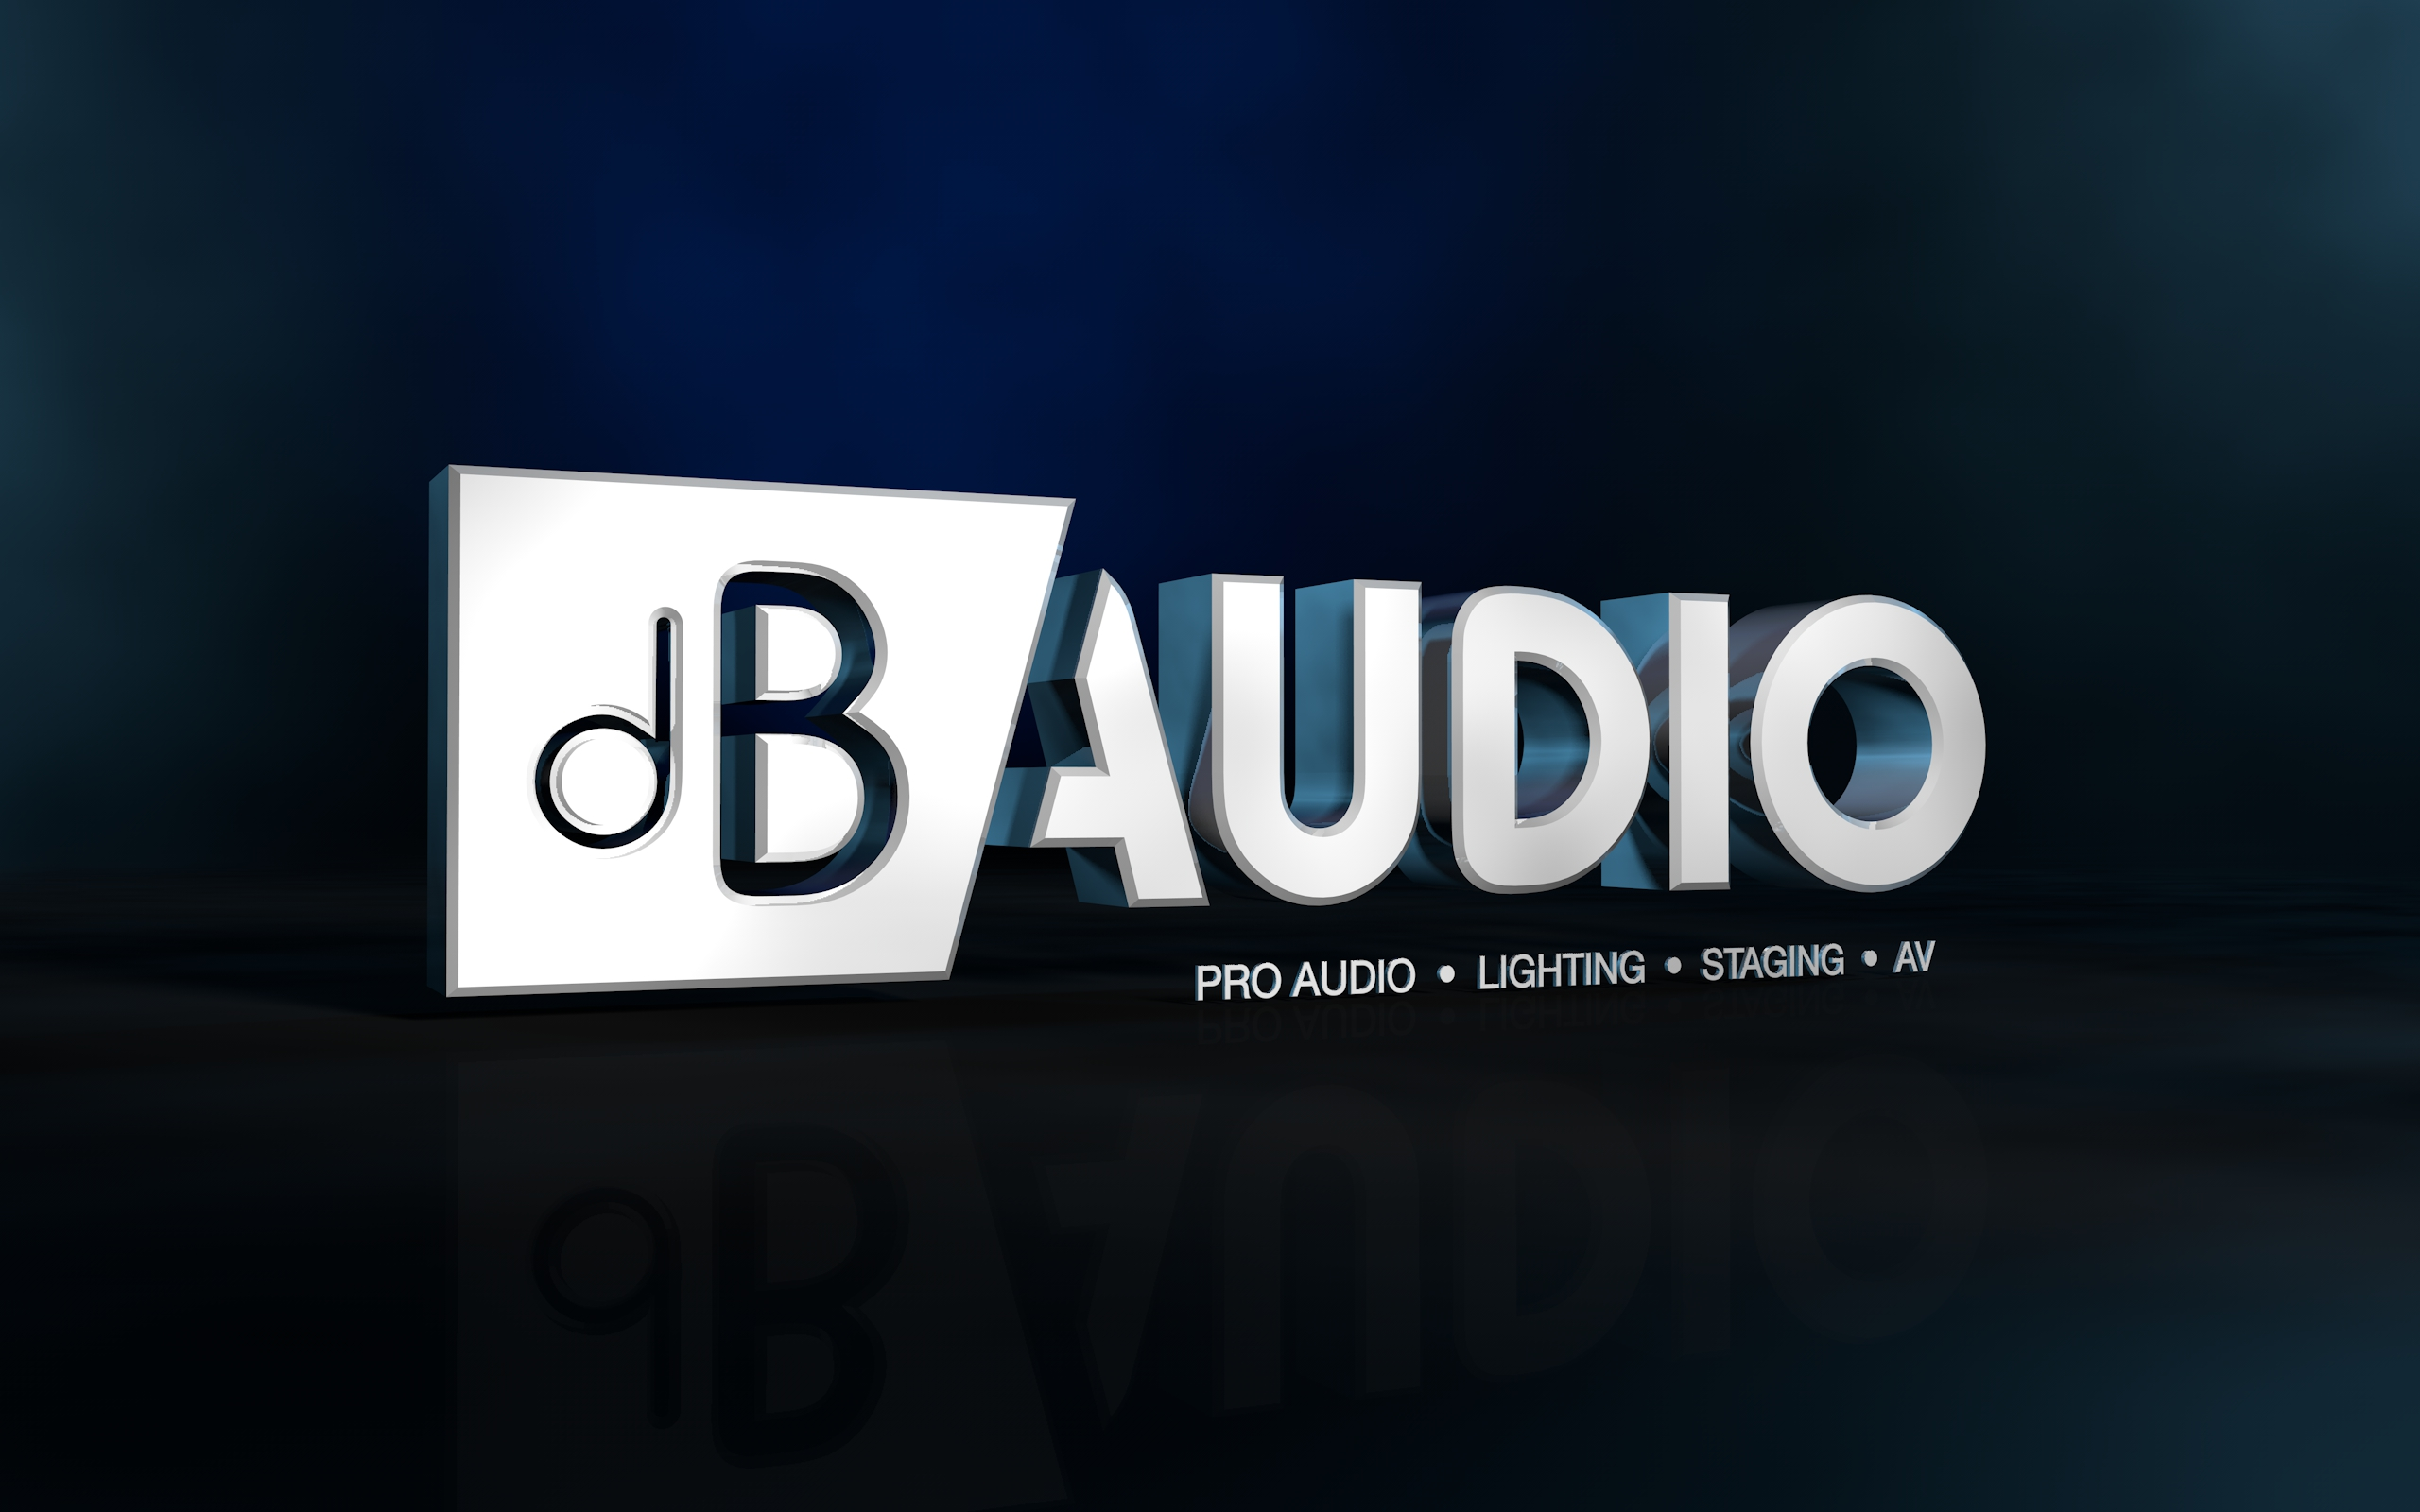 DB AUDIO | Sound Hire | Lighting | Staging | AV | Sales | Installations | Rentals | Hire | Events | Cape Town | Western Cape | South Africa & DB AUDIO | Sound Hire | Lighting | Staging | AV | Sales ...